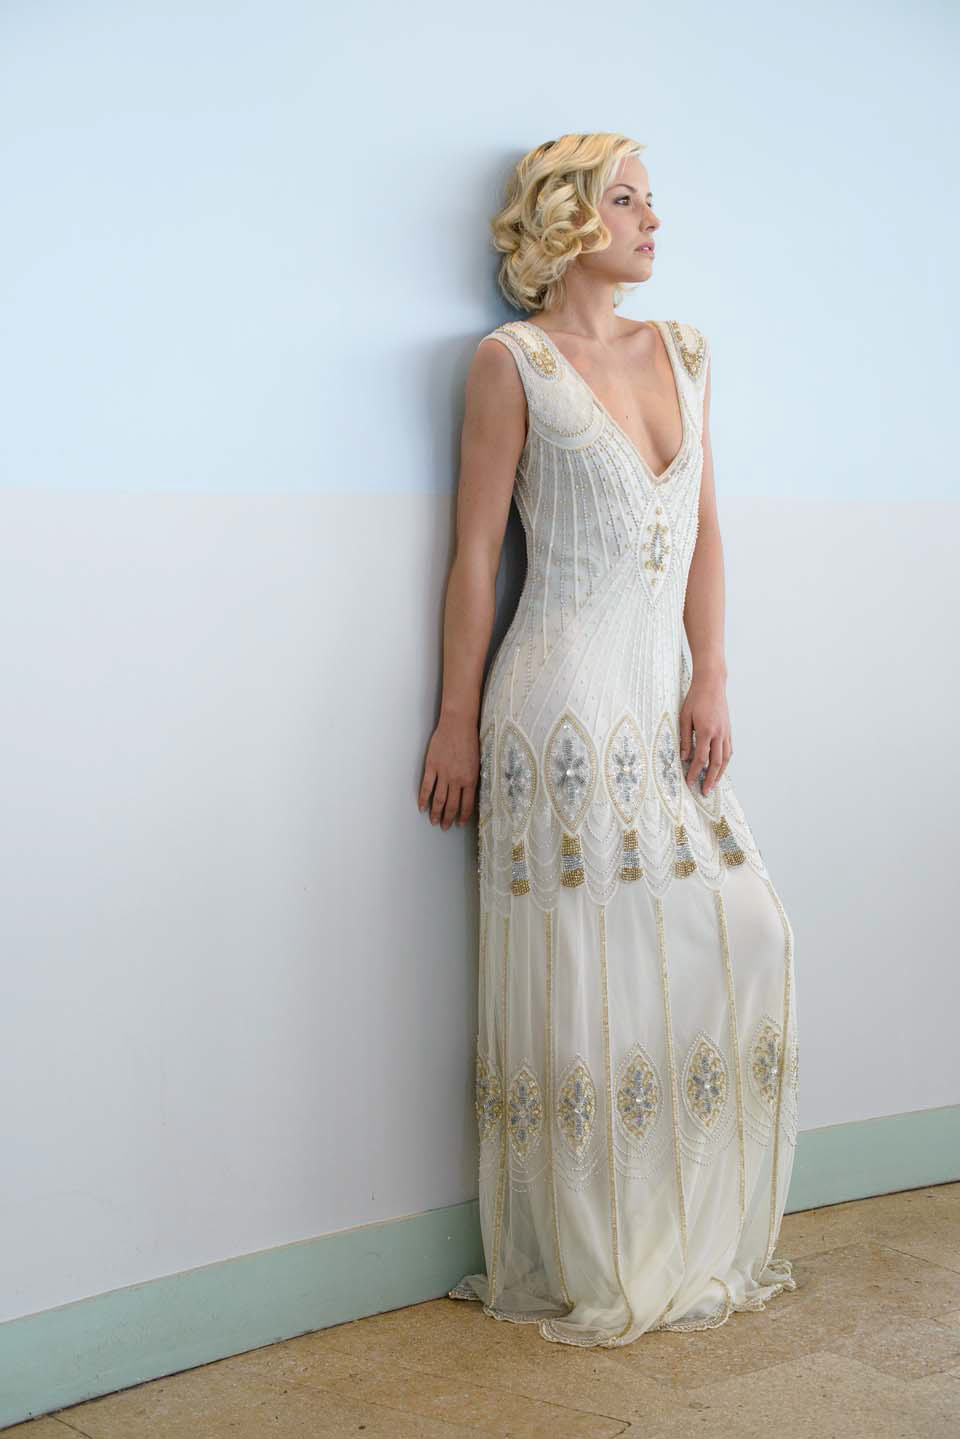 vicky rowe a debut collection of 1920s and 1930s inspired